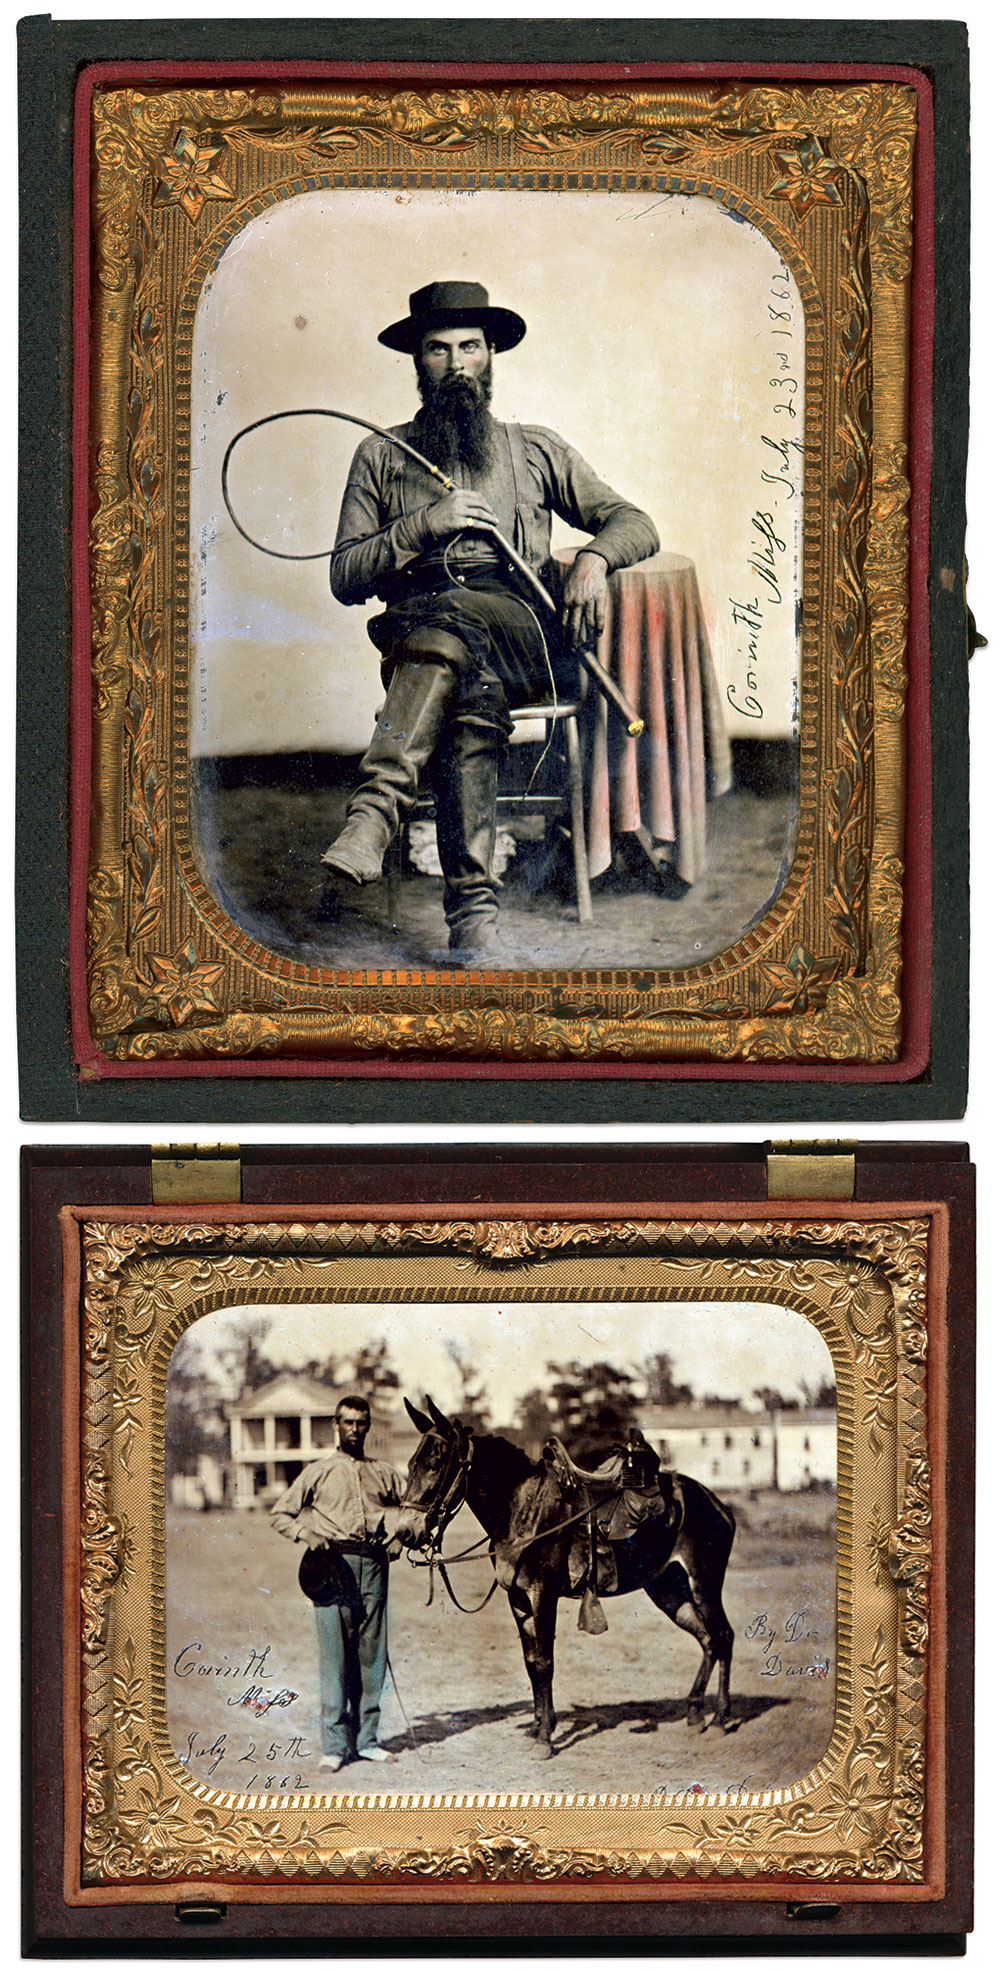 Top: Sixth-plate tintype by Davis of Corinth, Miss.Brad Burch Collection. Bottom: Quarter-plate tintype by Davis of Corinth, Miss. Rick Brown Collection.